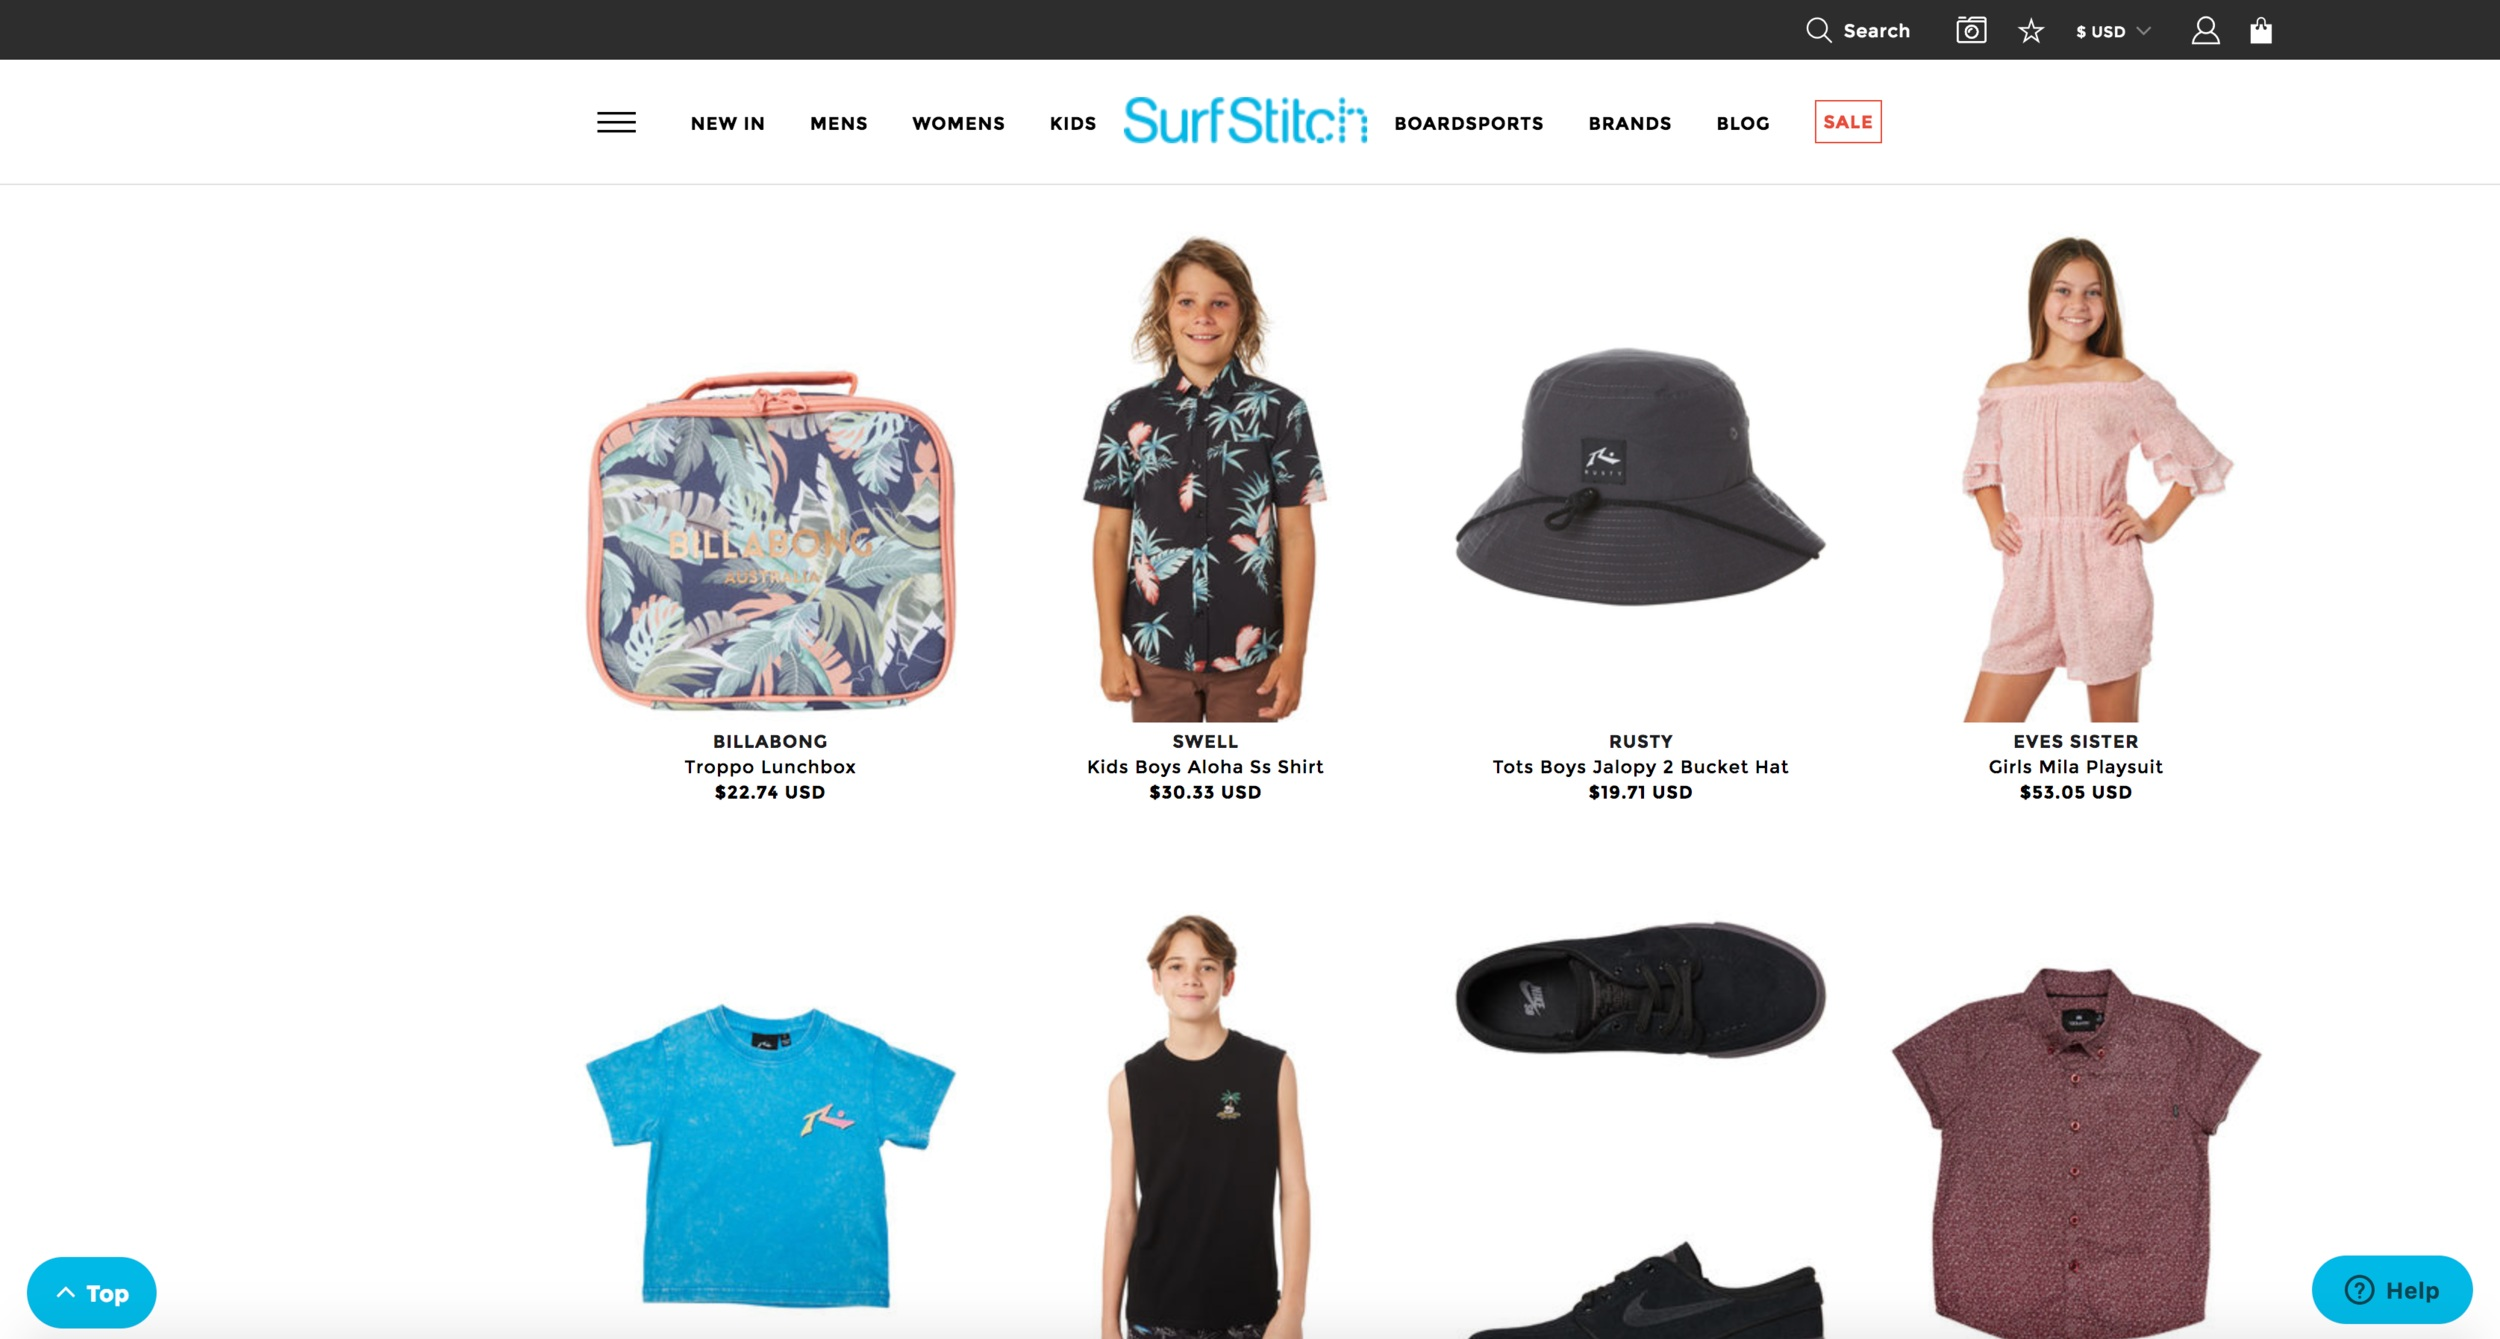 SurfStitch Website   When the founders of SurfStitch wanted to take their idea into the retail space, I was able to paddle out to help strategize and plan branding, site development and e-commerce. These days they're the world's largest online action sports and youth apparel network. Dude.